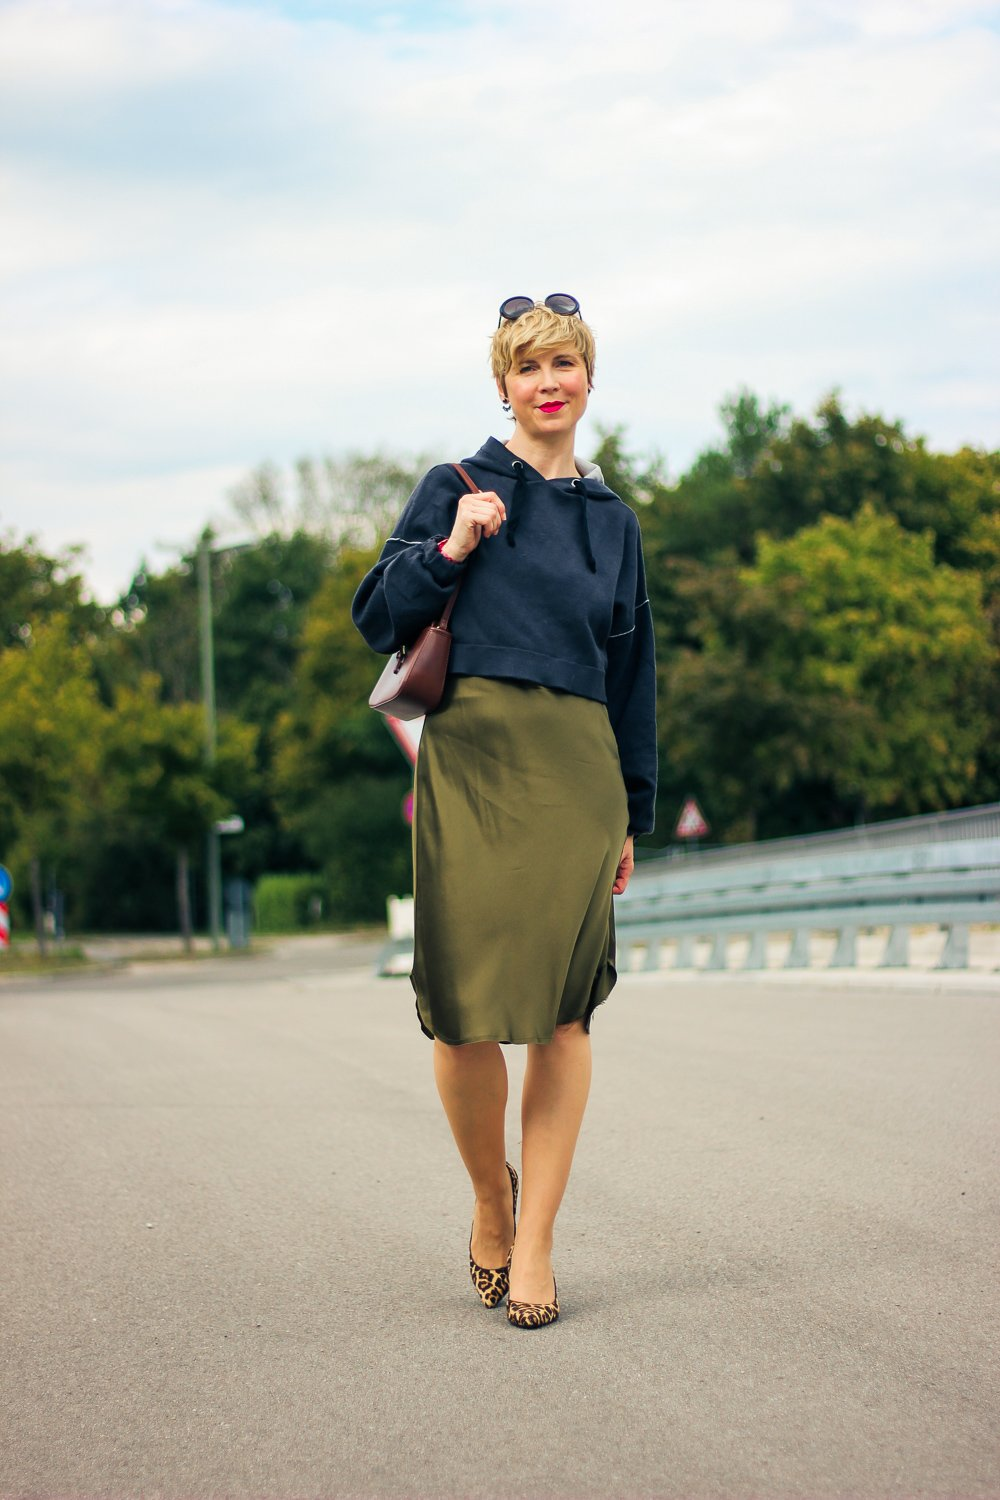 conny doll lifestyle: Lingeriestyle, Nili Lotan, Stilmix, Leopumps, Hoodie, Herbststyling